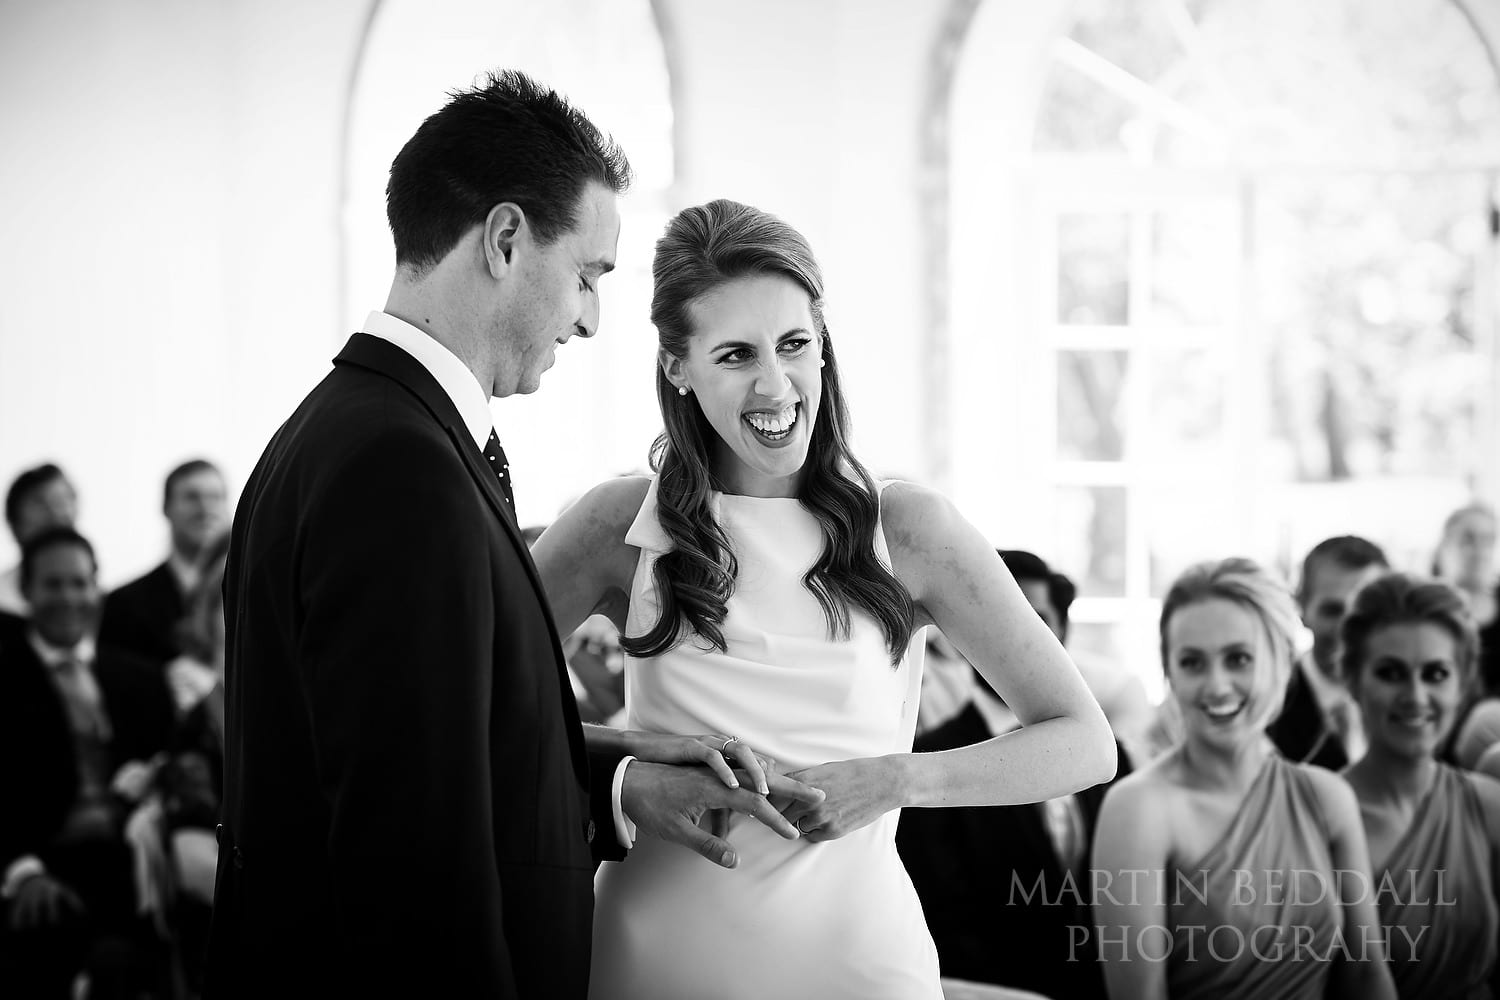 Getting the ring onto the groom's finger